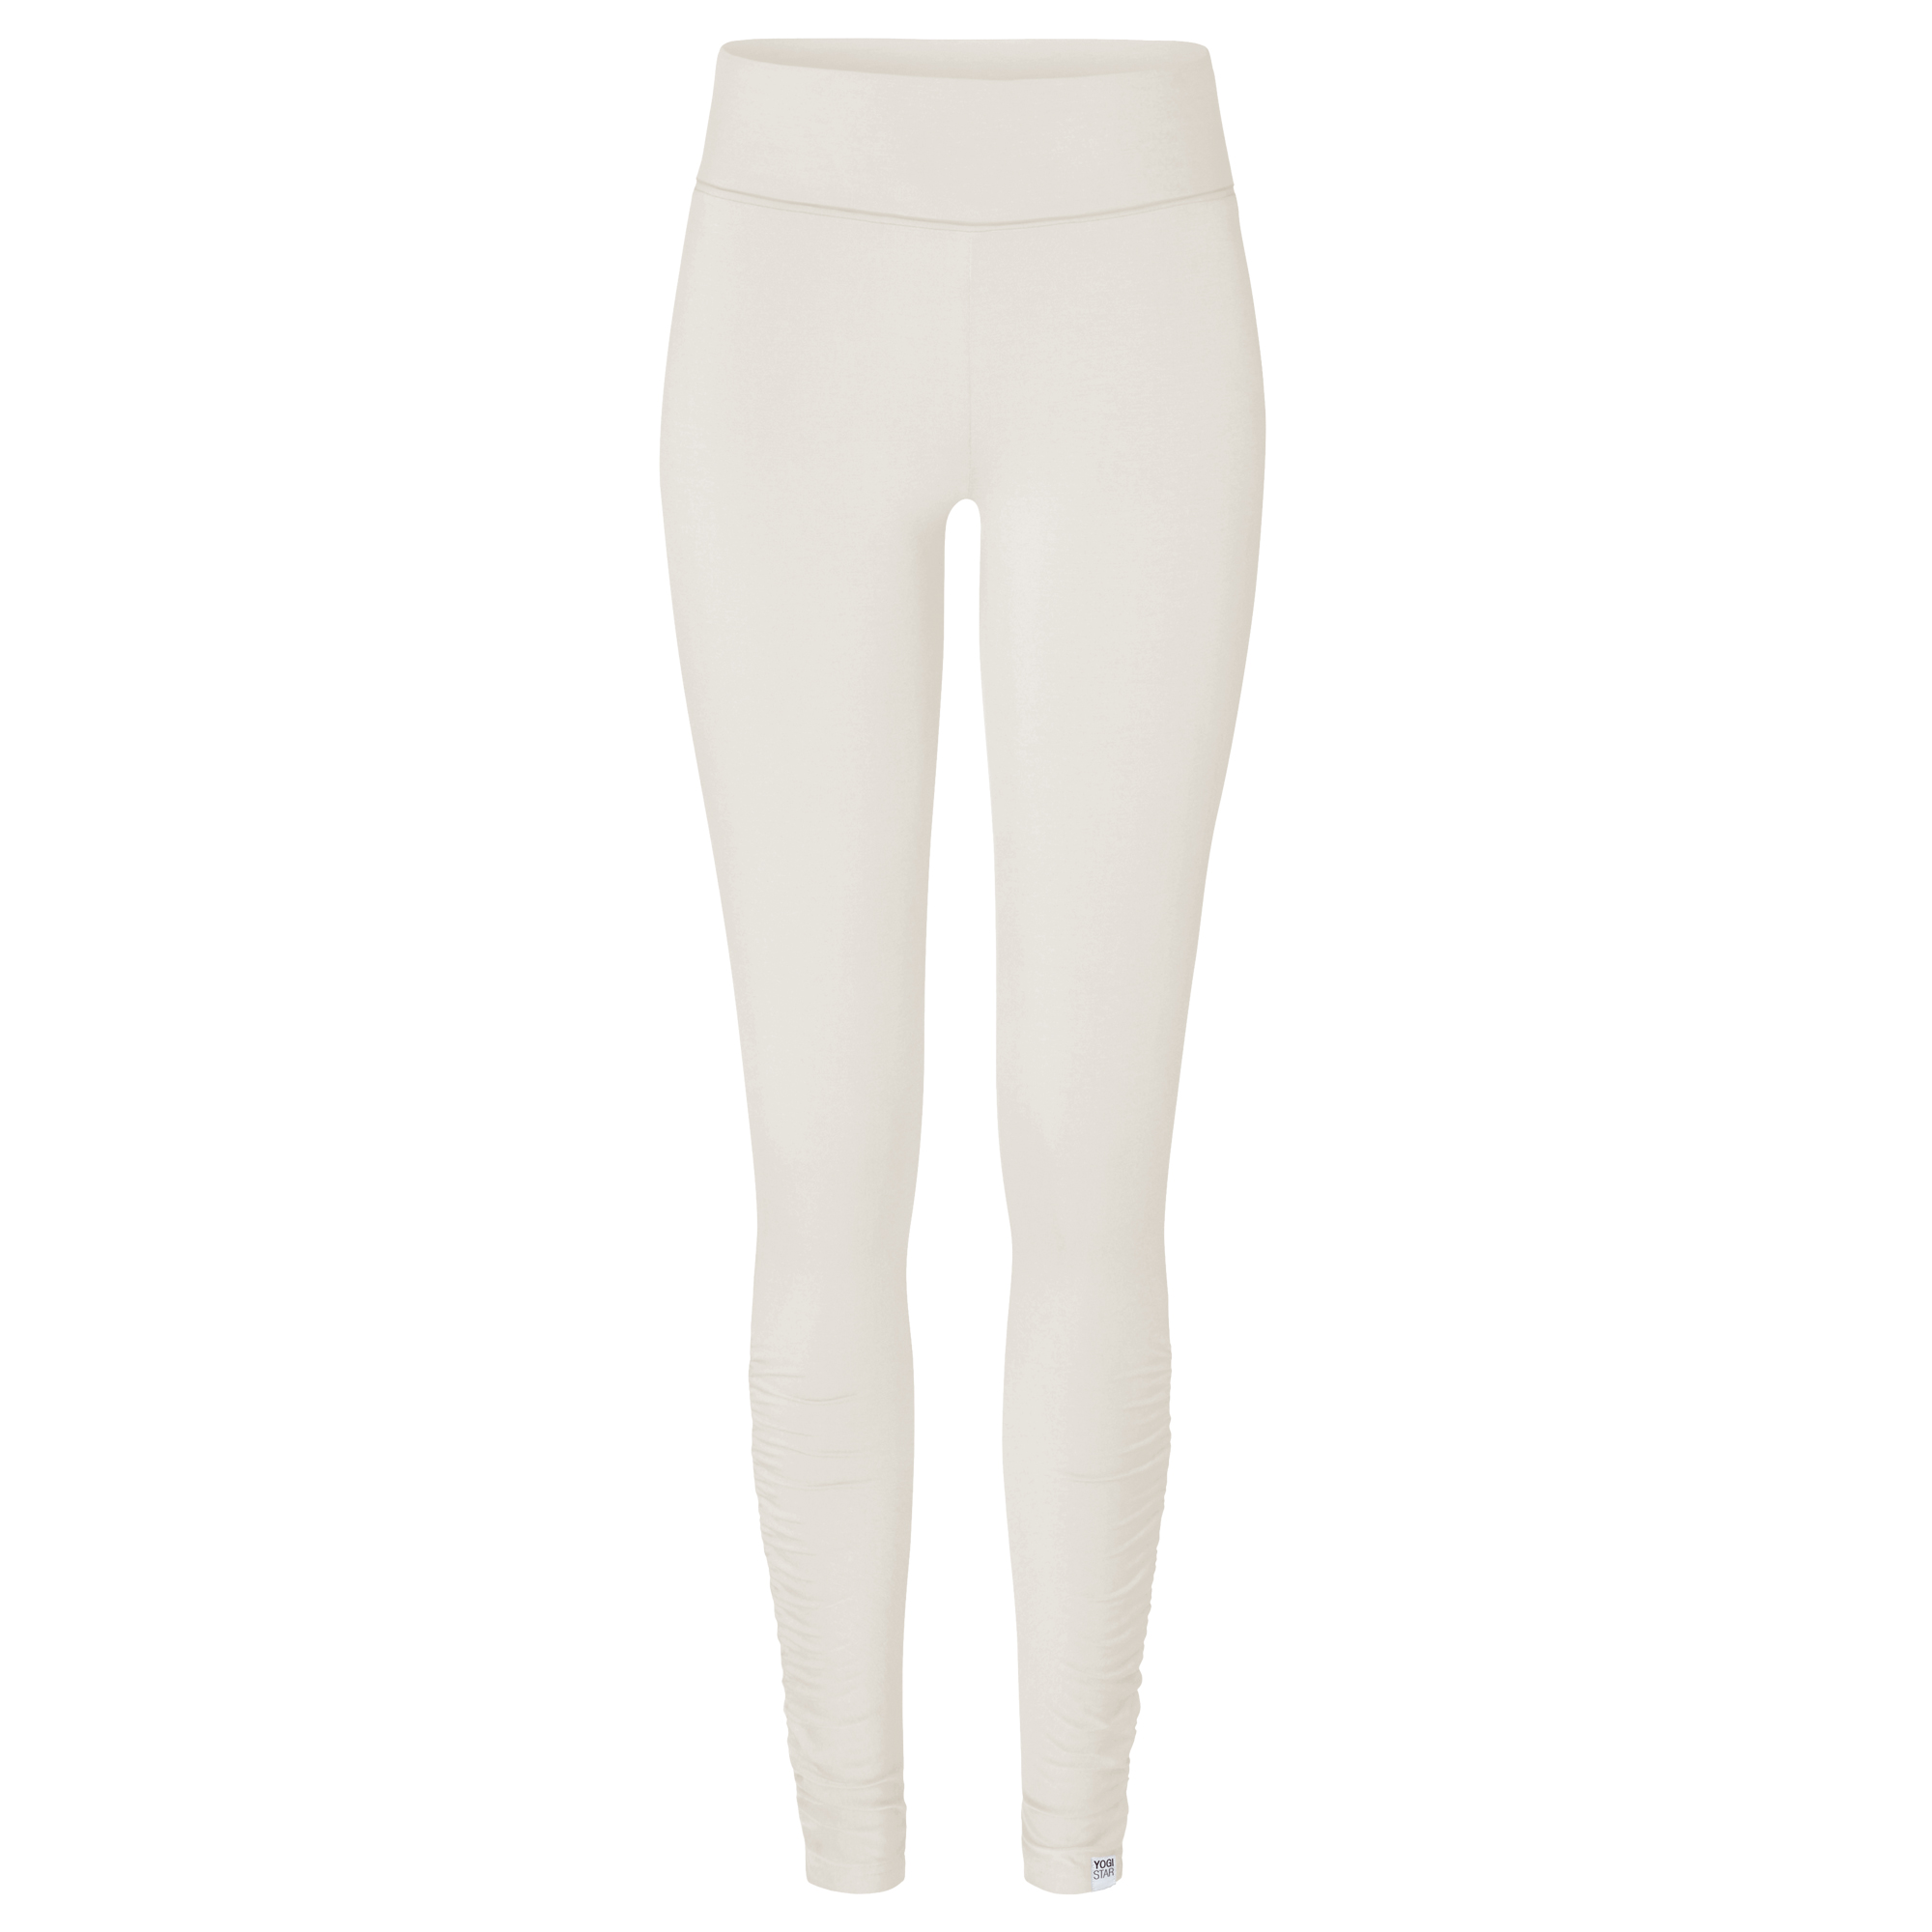 "Yoga-Leggings rolldown ""ala"" - ivory"